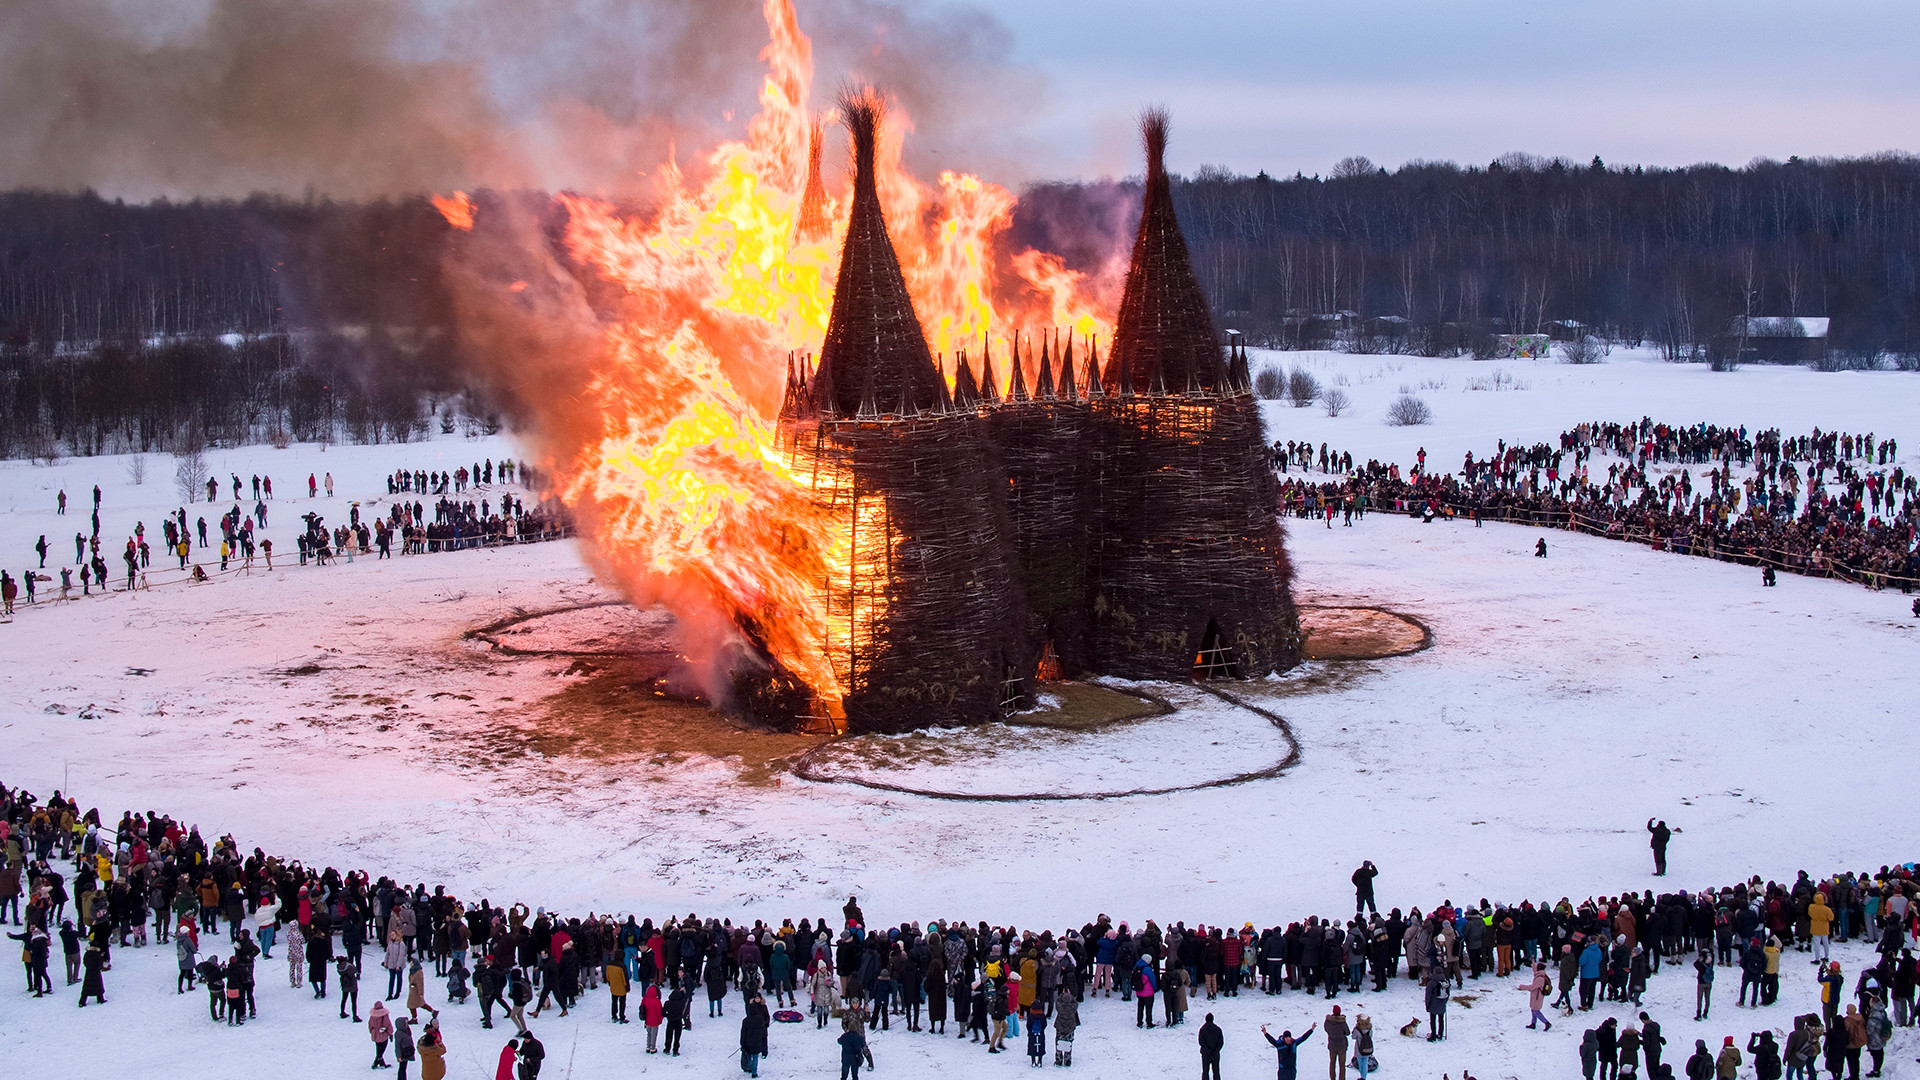 People watch a castle-shape wooden construction burning as part of celebrations at the Maslenitsa (Shrovetide) festival at the Nikola-Lenivets art park in Nikola-Lenivets village, about 200 kilometers (125 miles) south-west of Moscow, Russia, Saturday, March 13, 2021